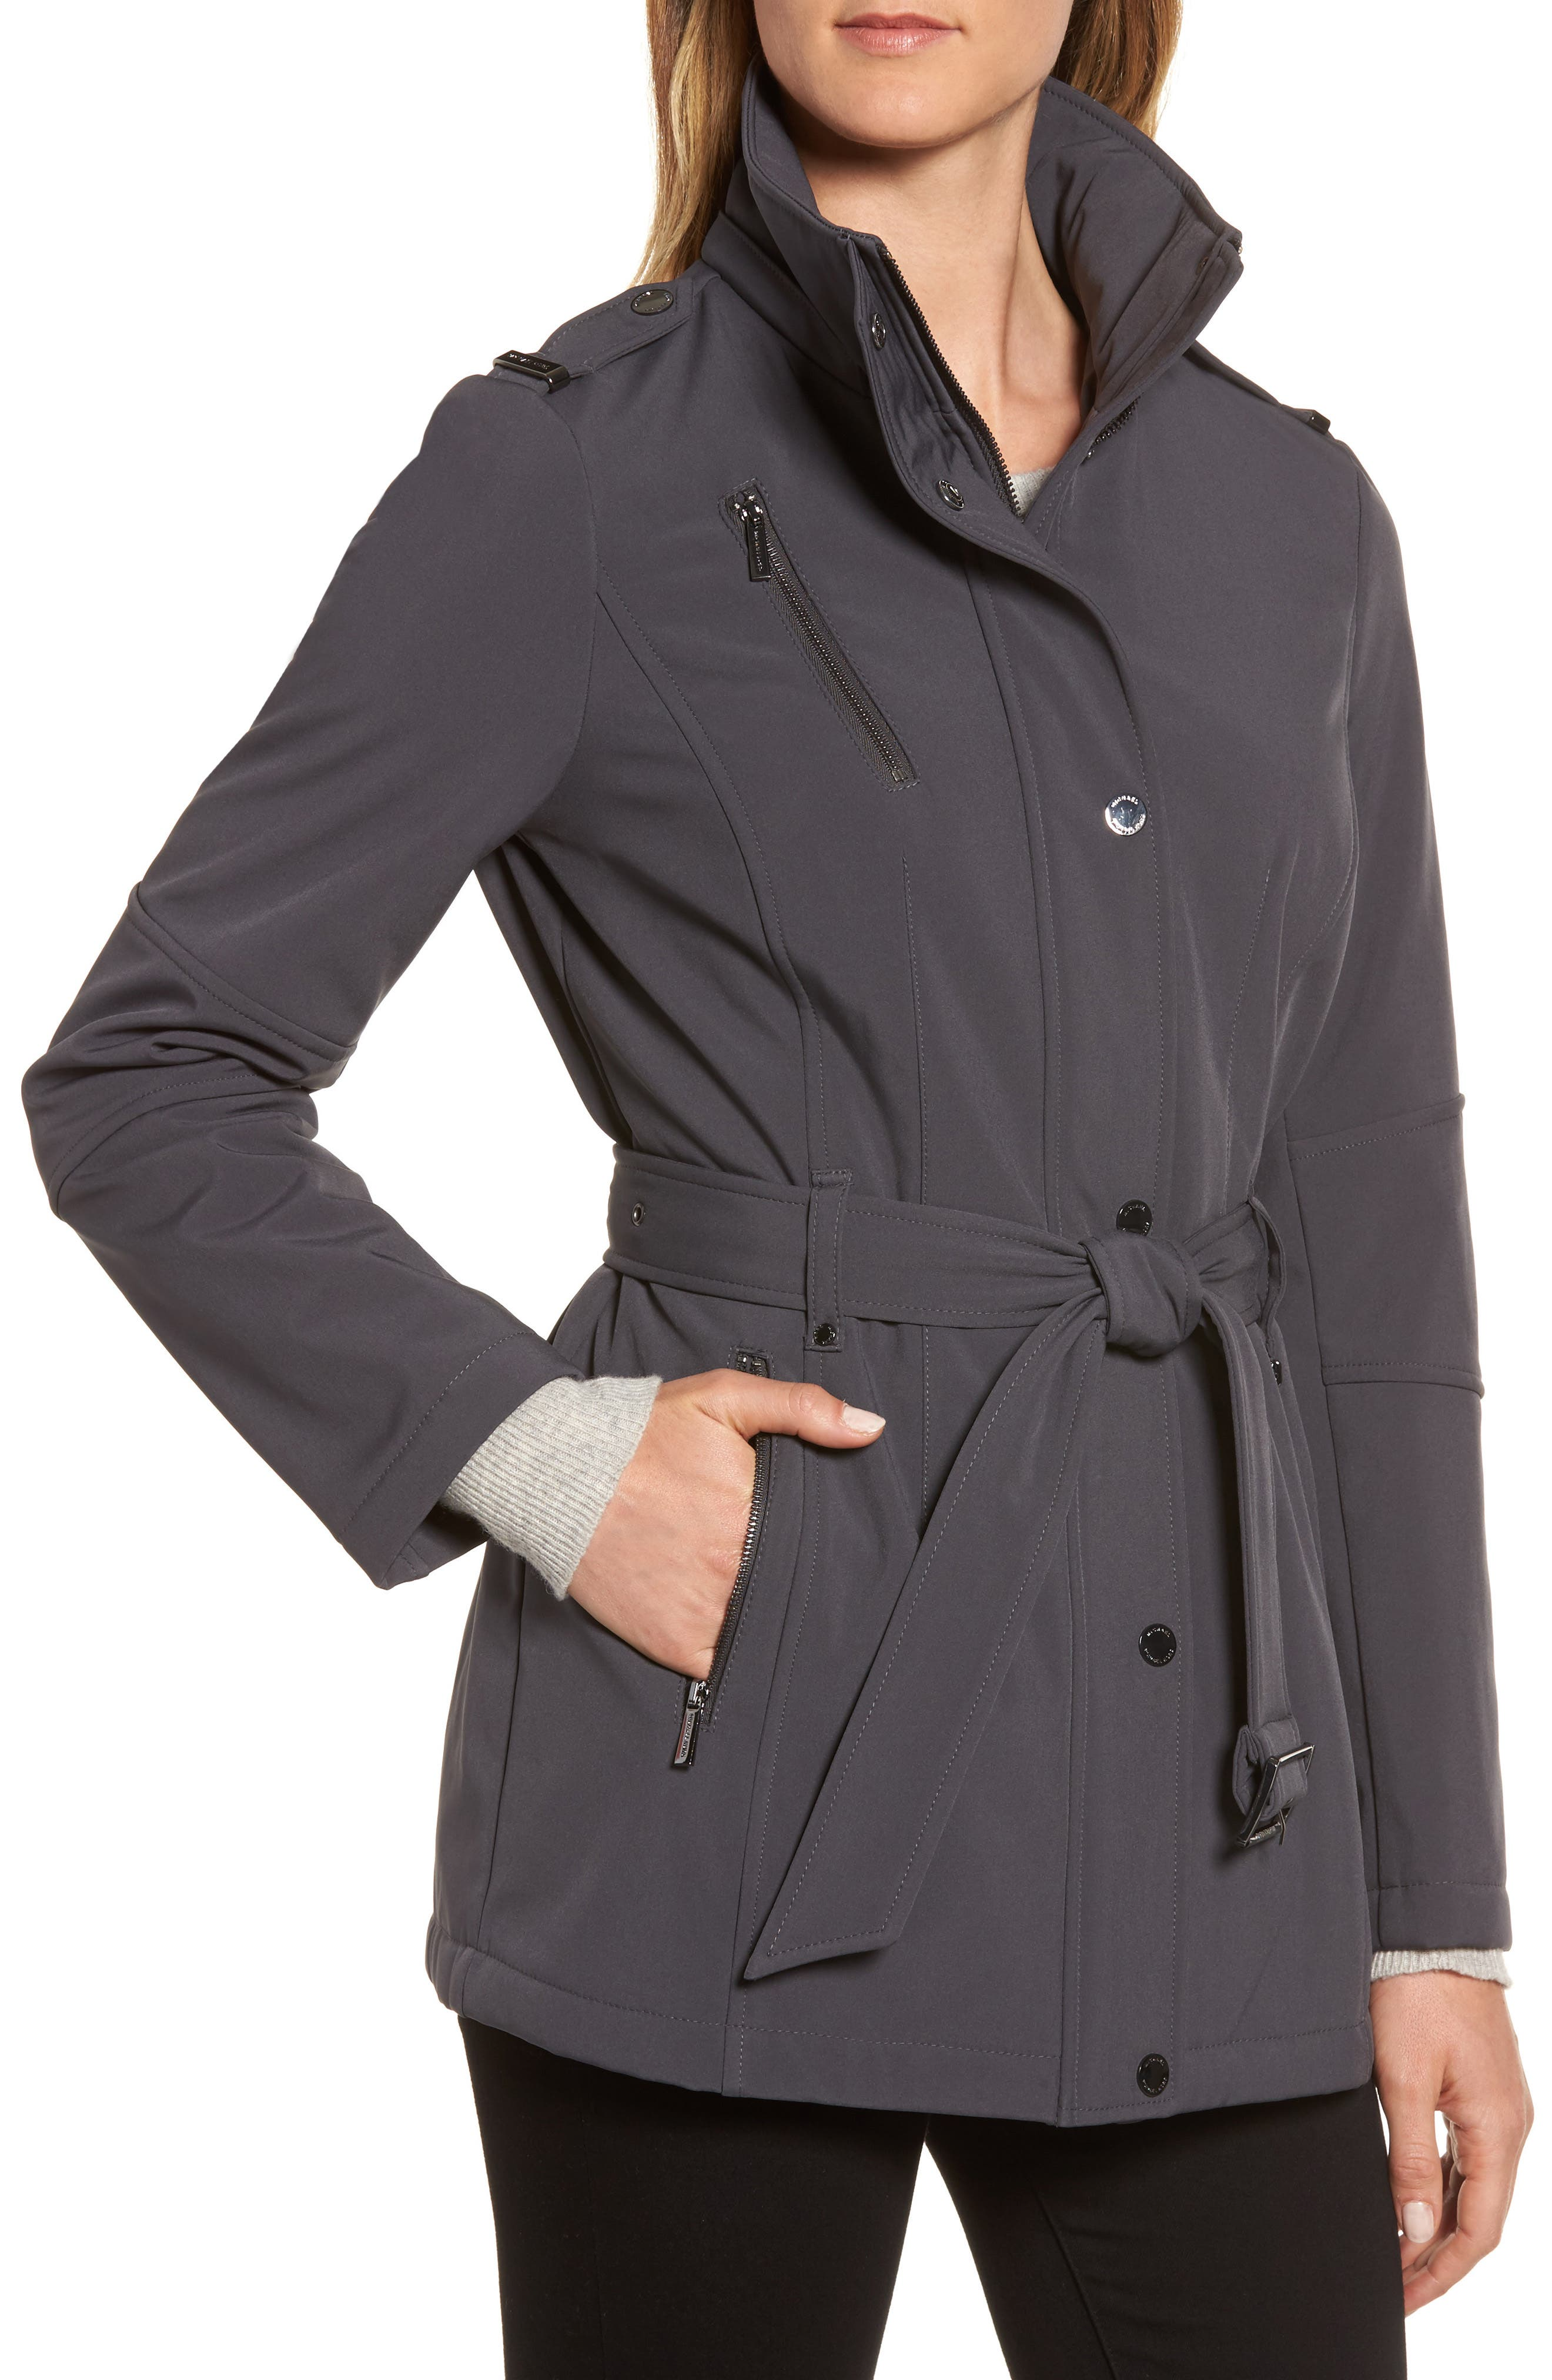 Waterproof Belted Jacket with Detachable Hood,                             Alternate thumbnail 4, color,                             Charcoal